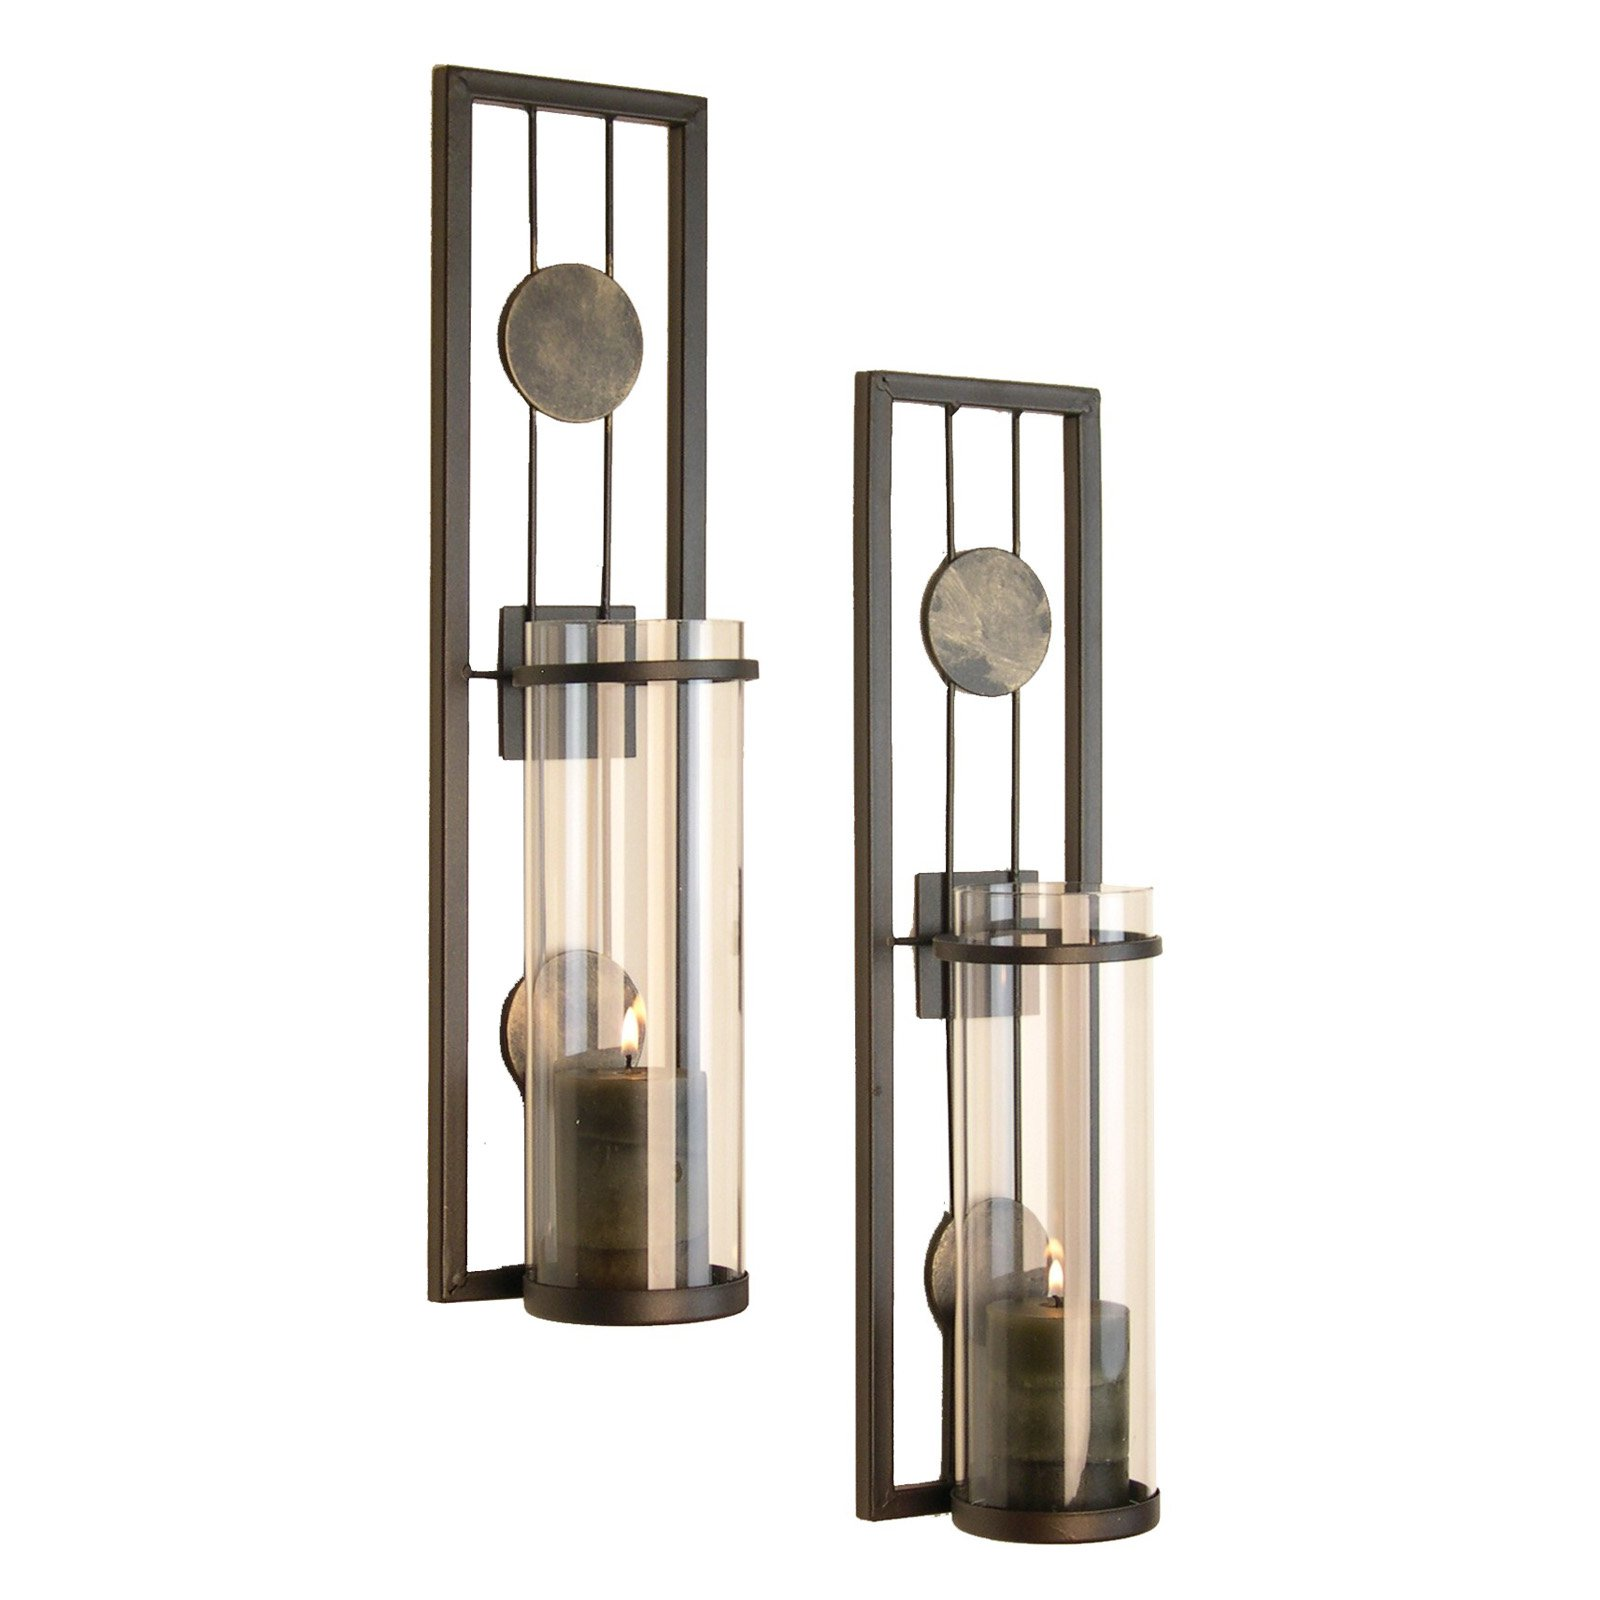 Superieur Danya B Contemporary Metal Wall Sconces With Antique Patina Medallions    Set Of 2